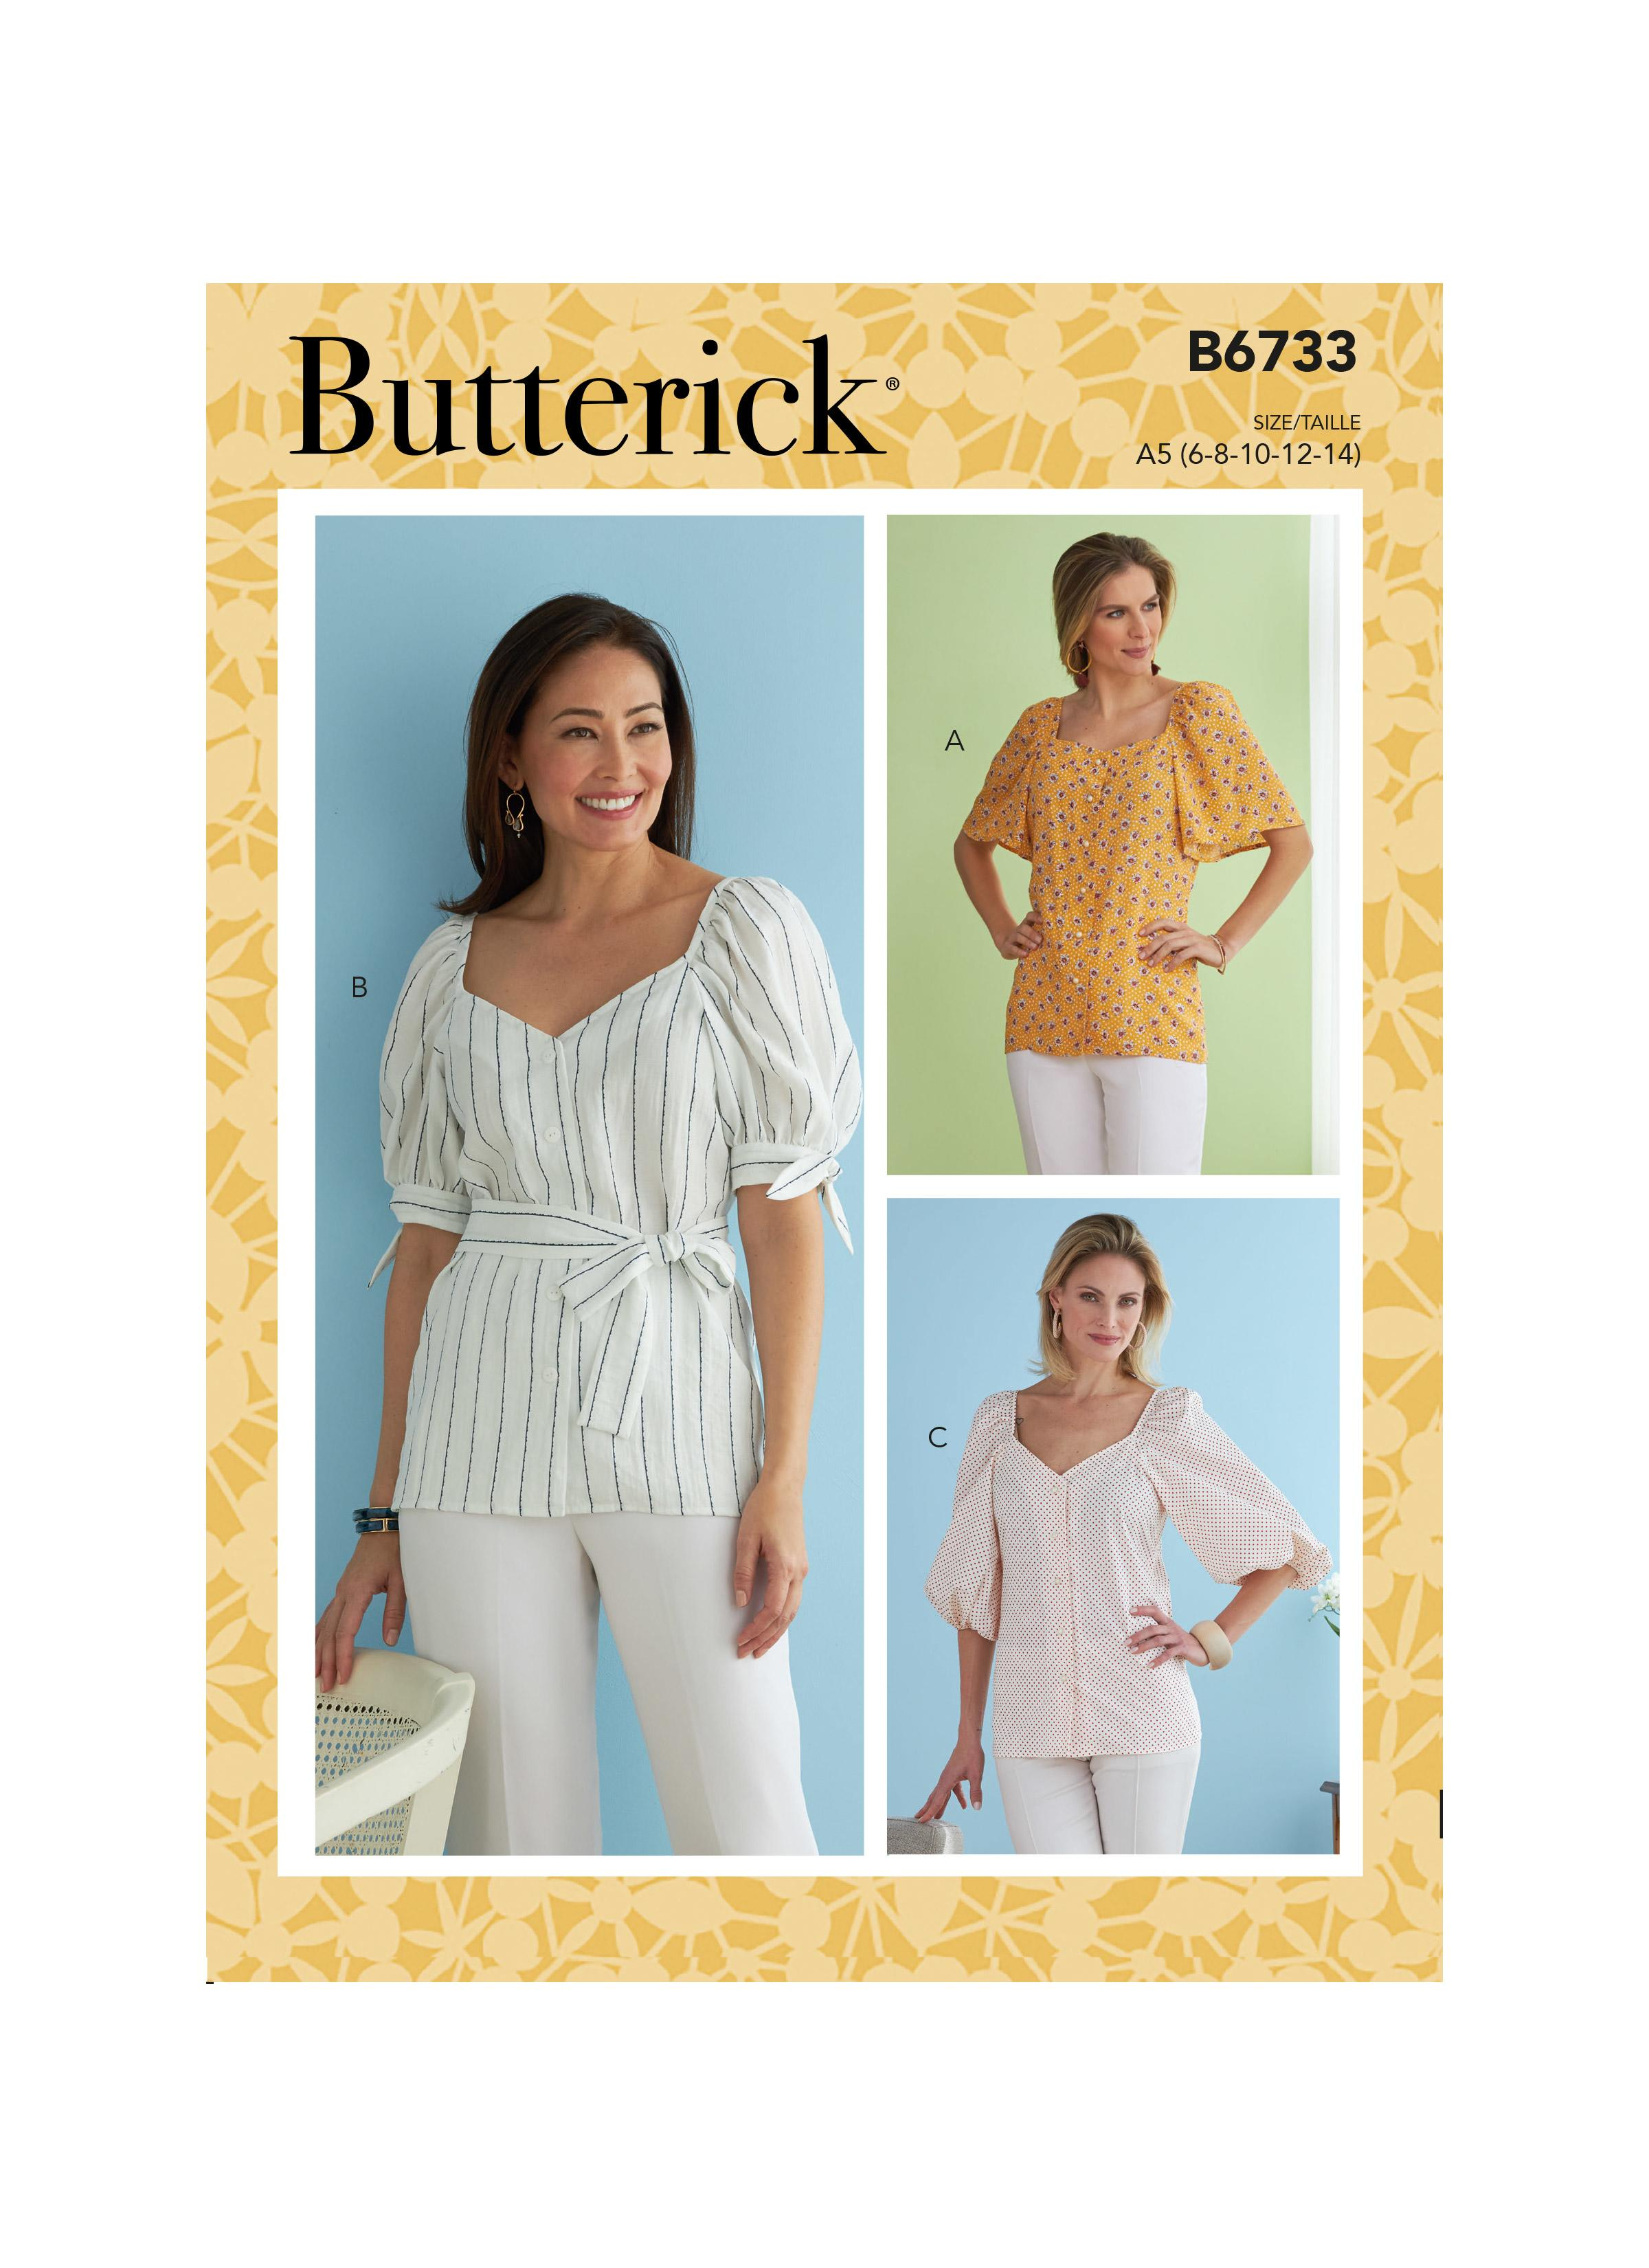 Butterick B6733 Misses' Top